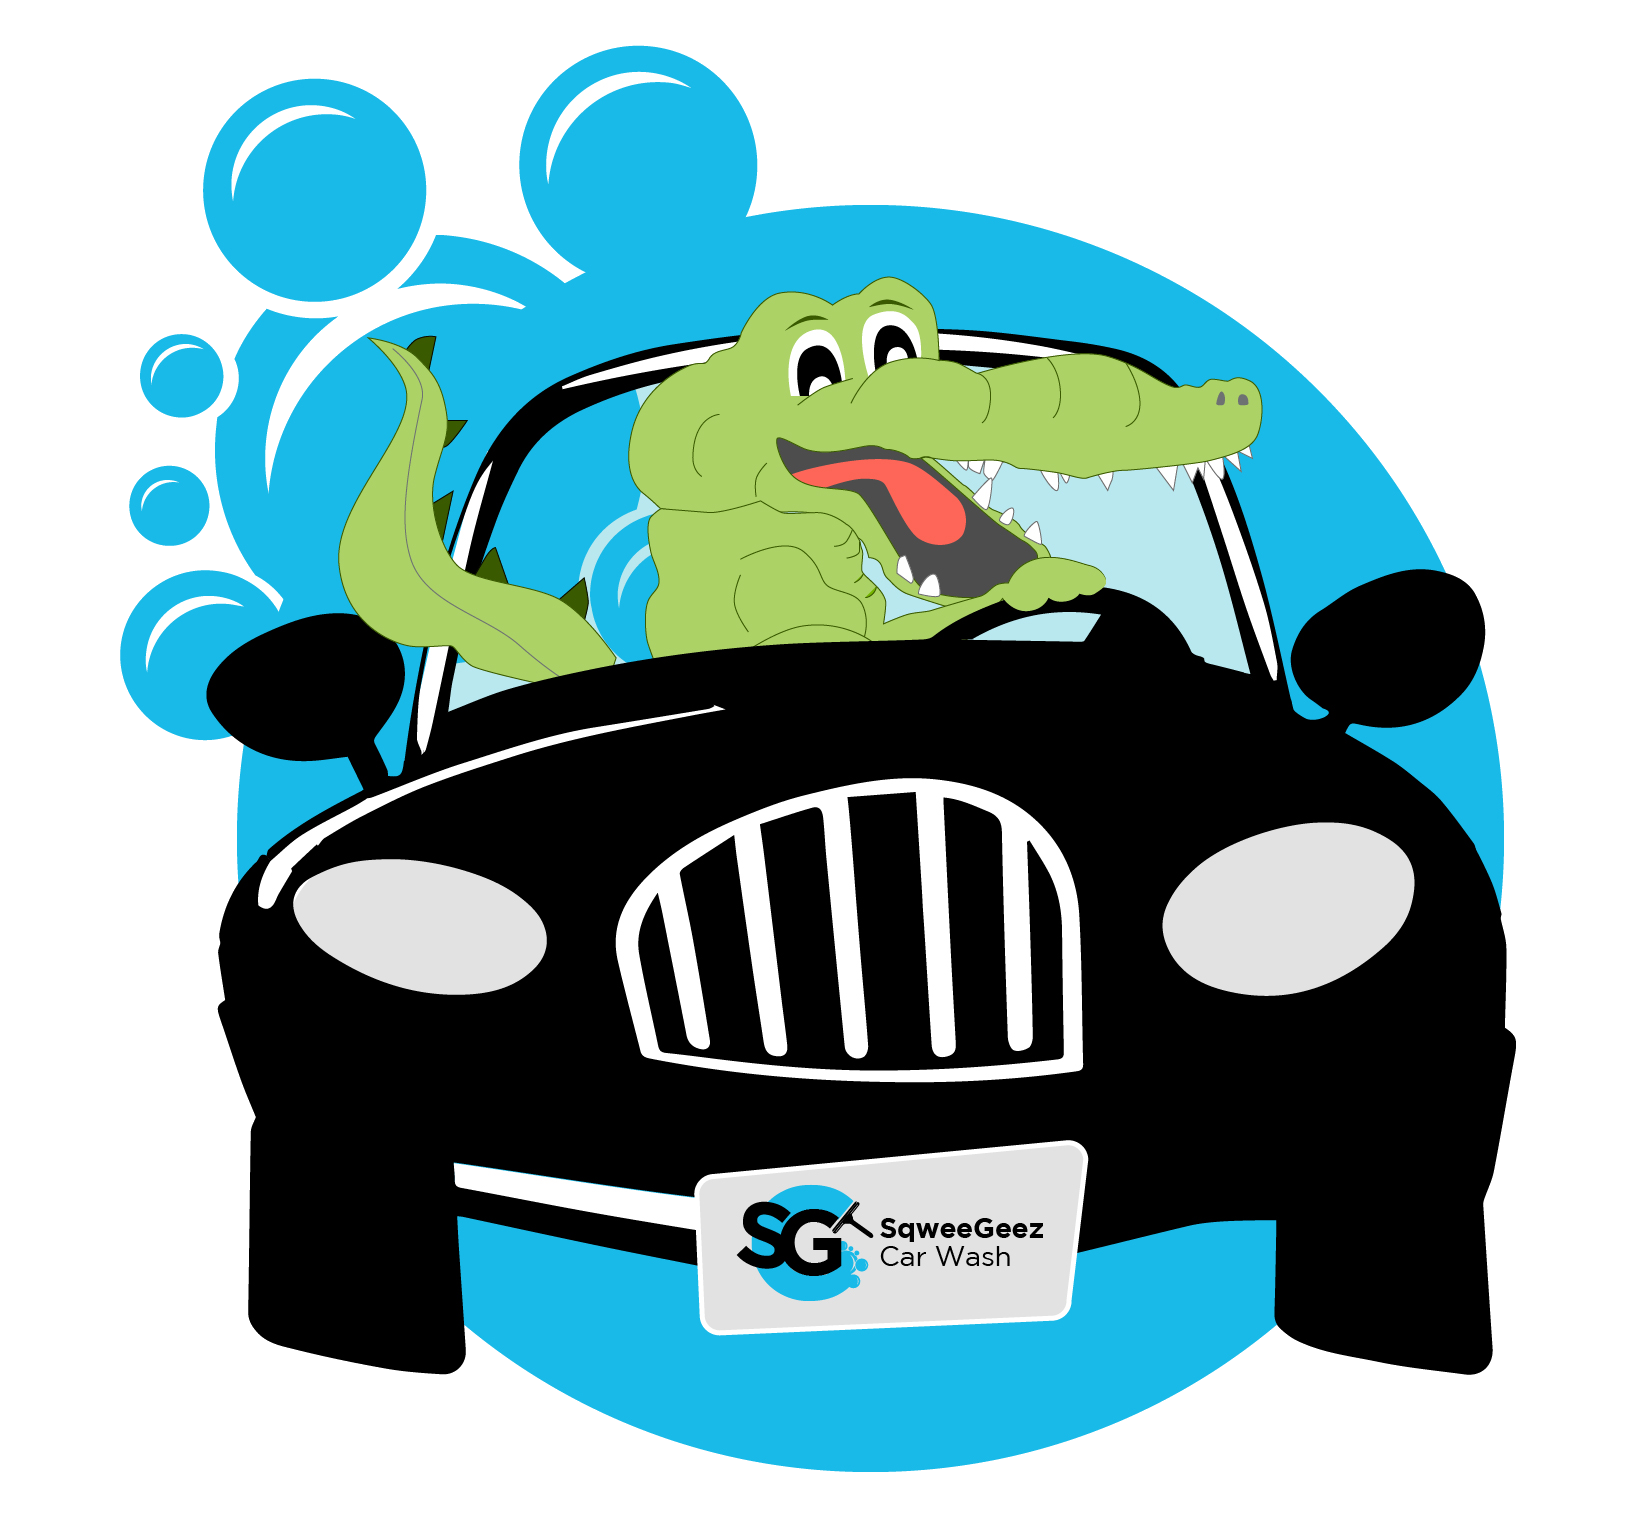 Car wash clipart transparent png freeuse download SqweeGeez Car Wash Genie Carwash & Fast Lube Genie Car Wash - car ... png freeuse download